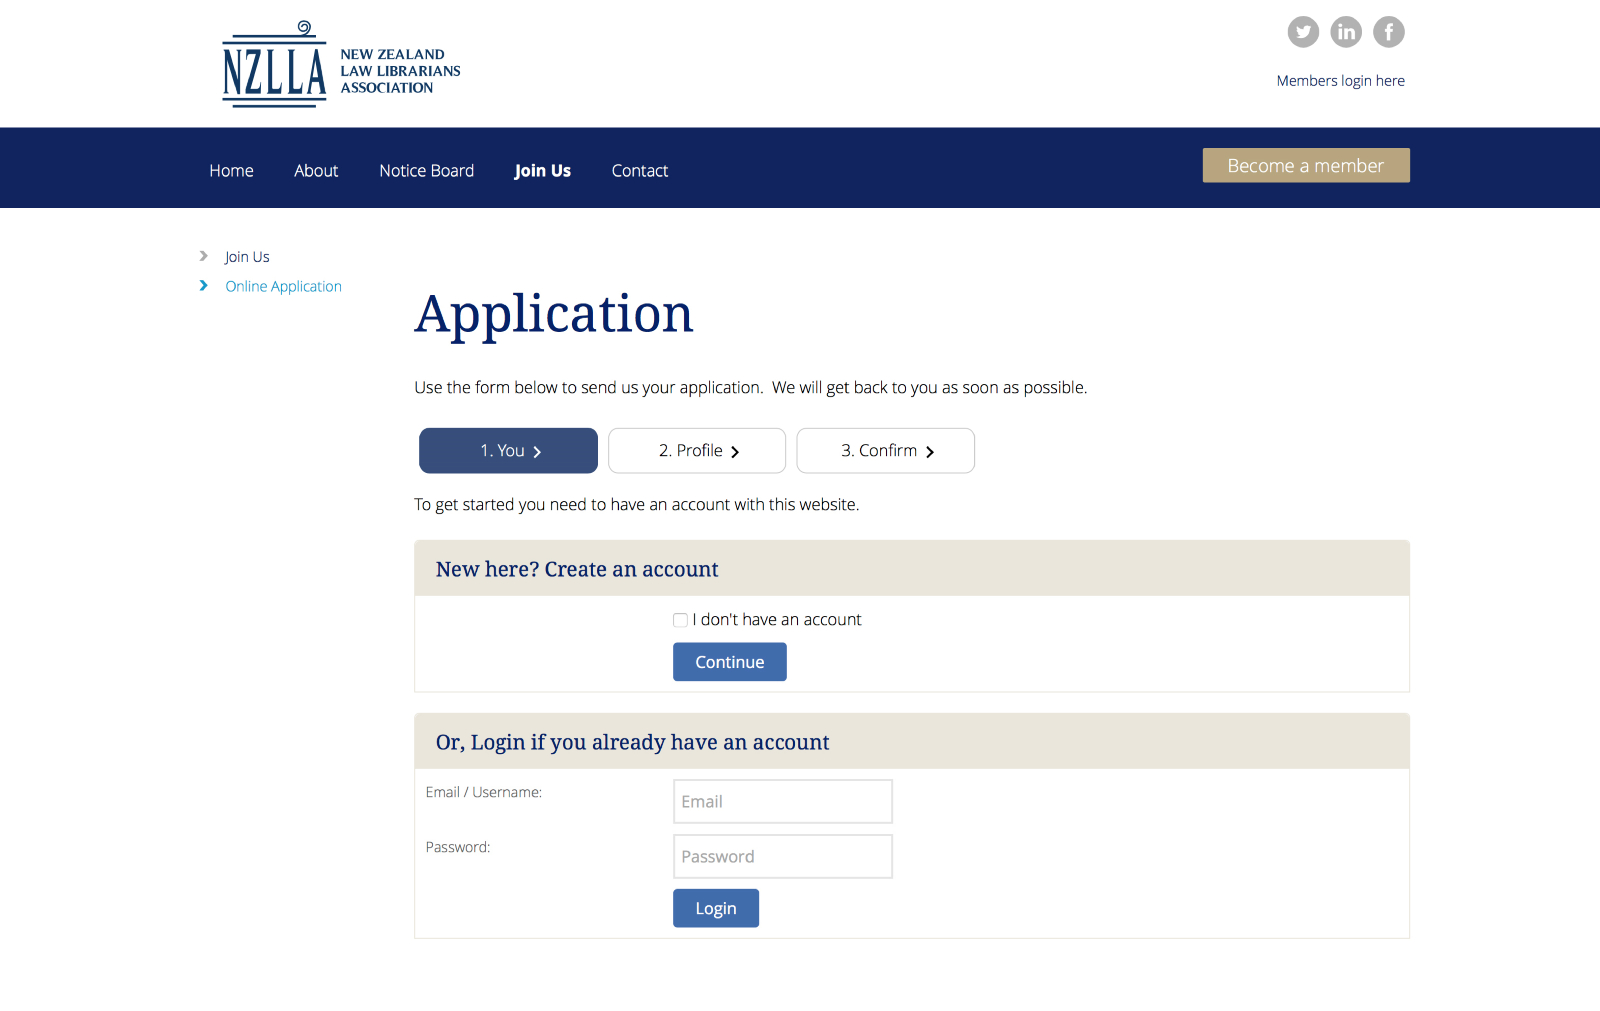 NZLLA Online Application